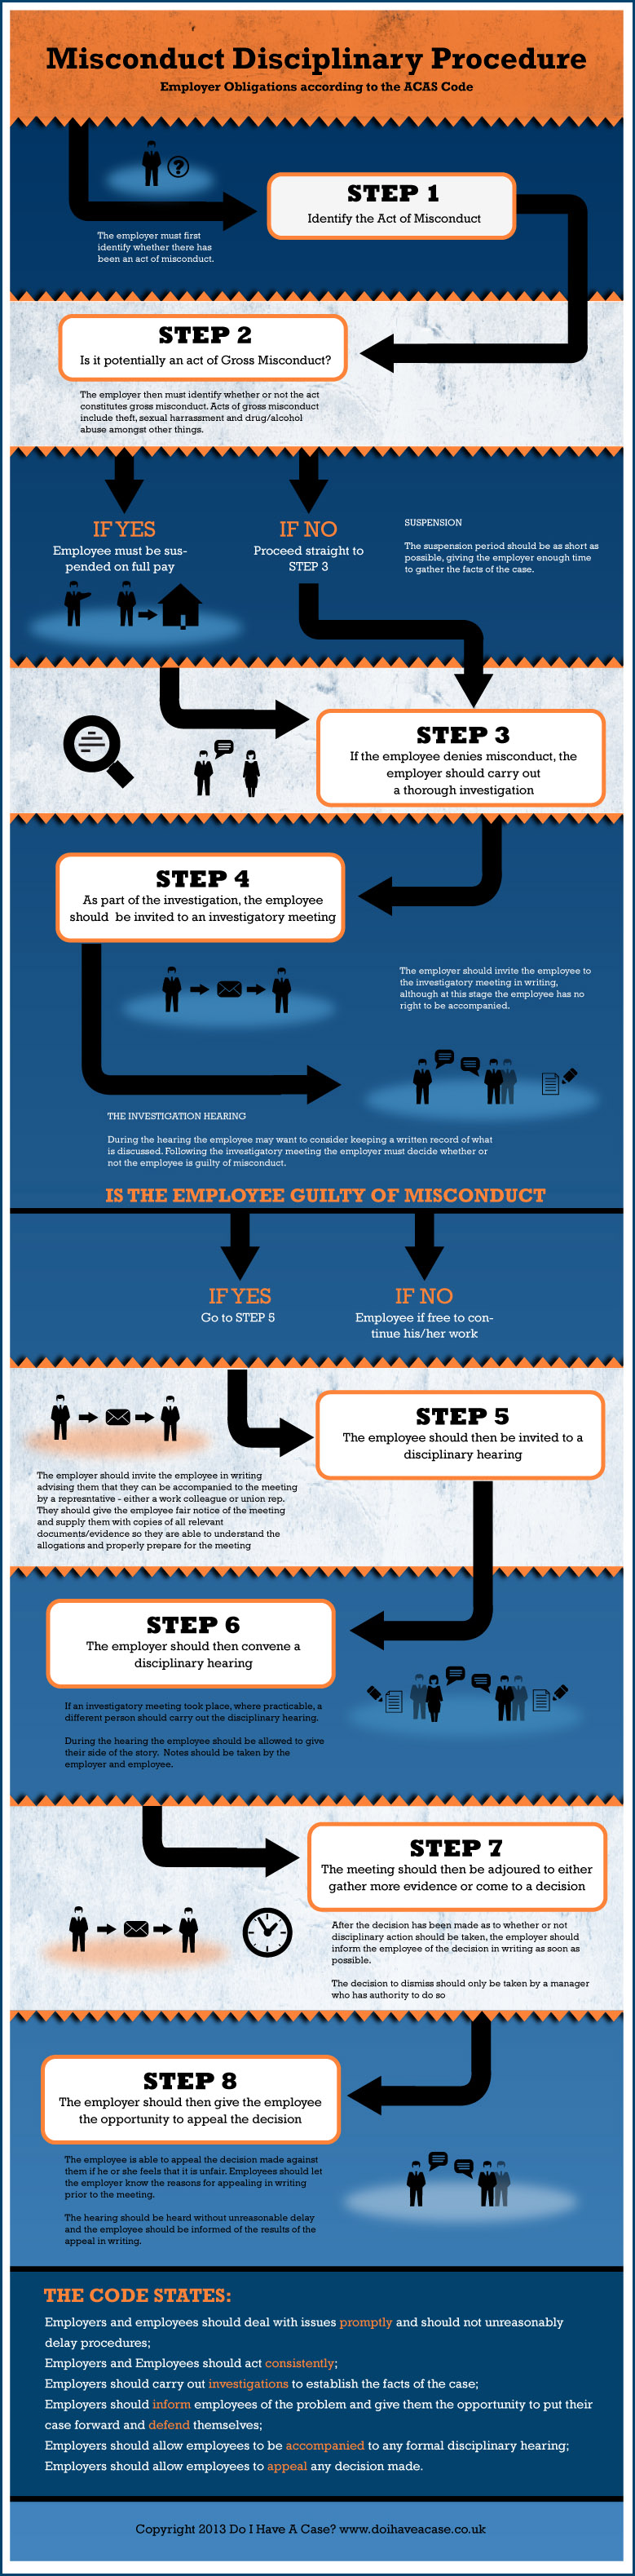 Infographic misconduct disciplinary procedure the acas code do infographic misconduct disciplinary procedure the acas code platinumwayz